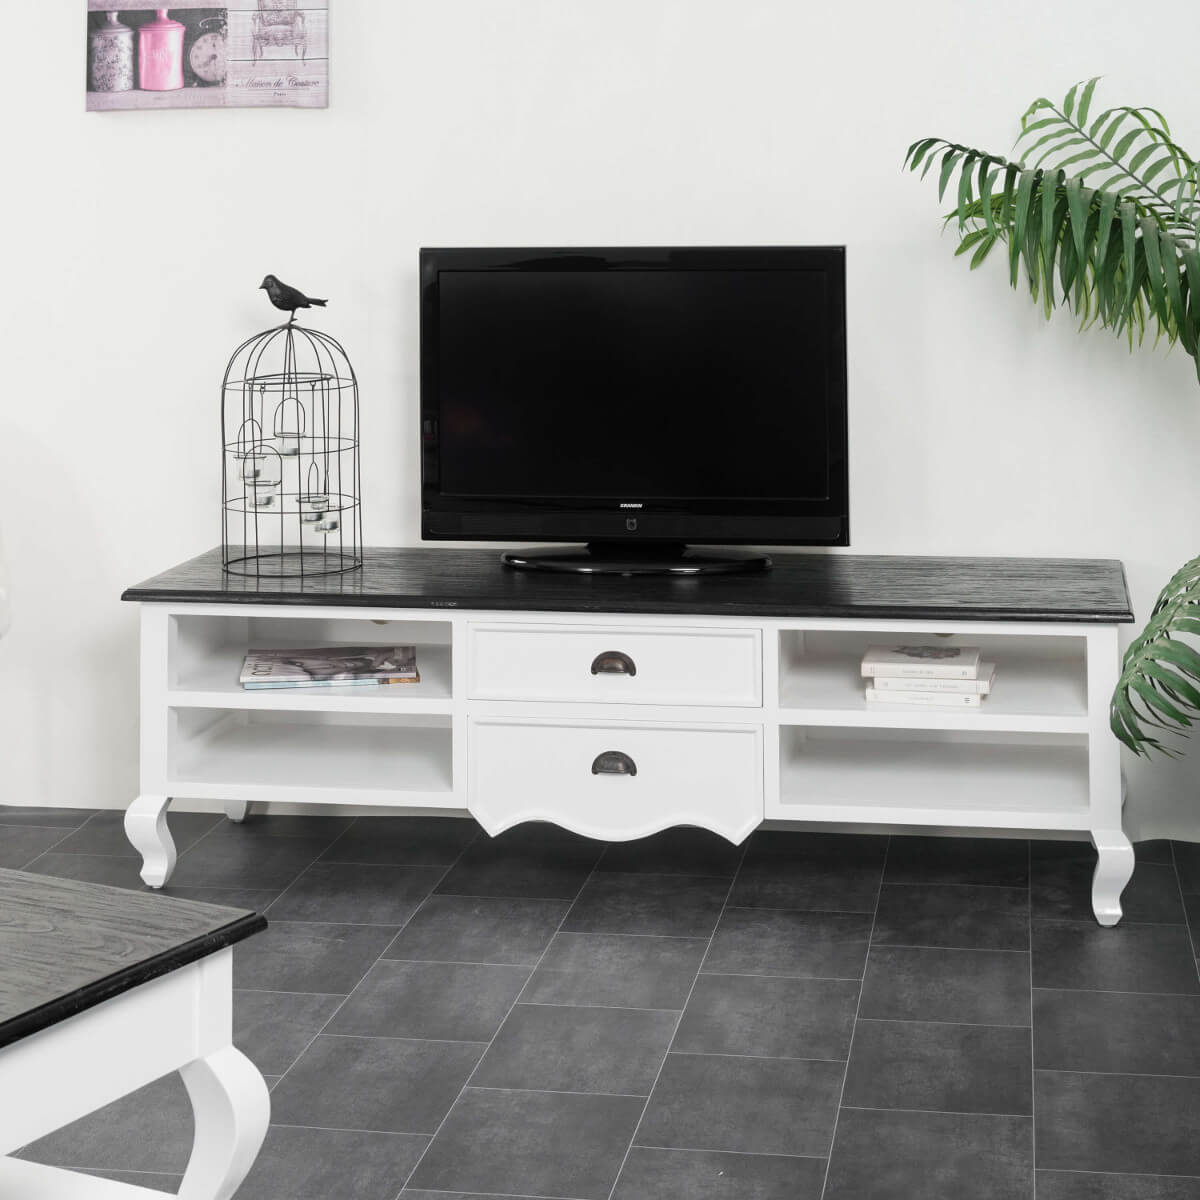 Meuble Tv Baroque Meuble Tv Acajou Blanc Rectangle Idao 170 Cm # Meuble Blanc Acajou